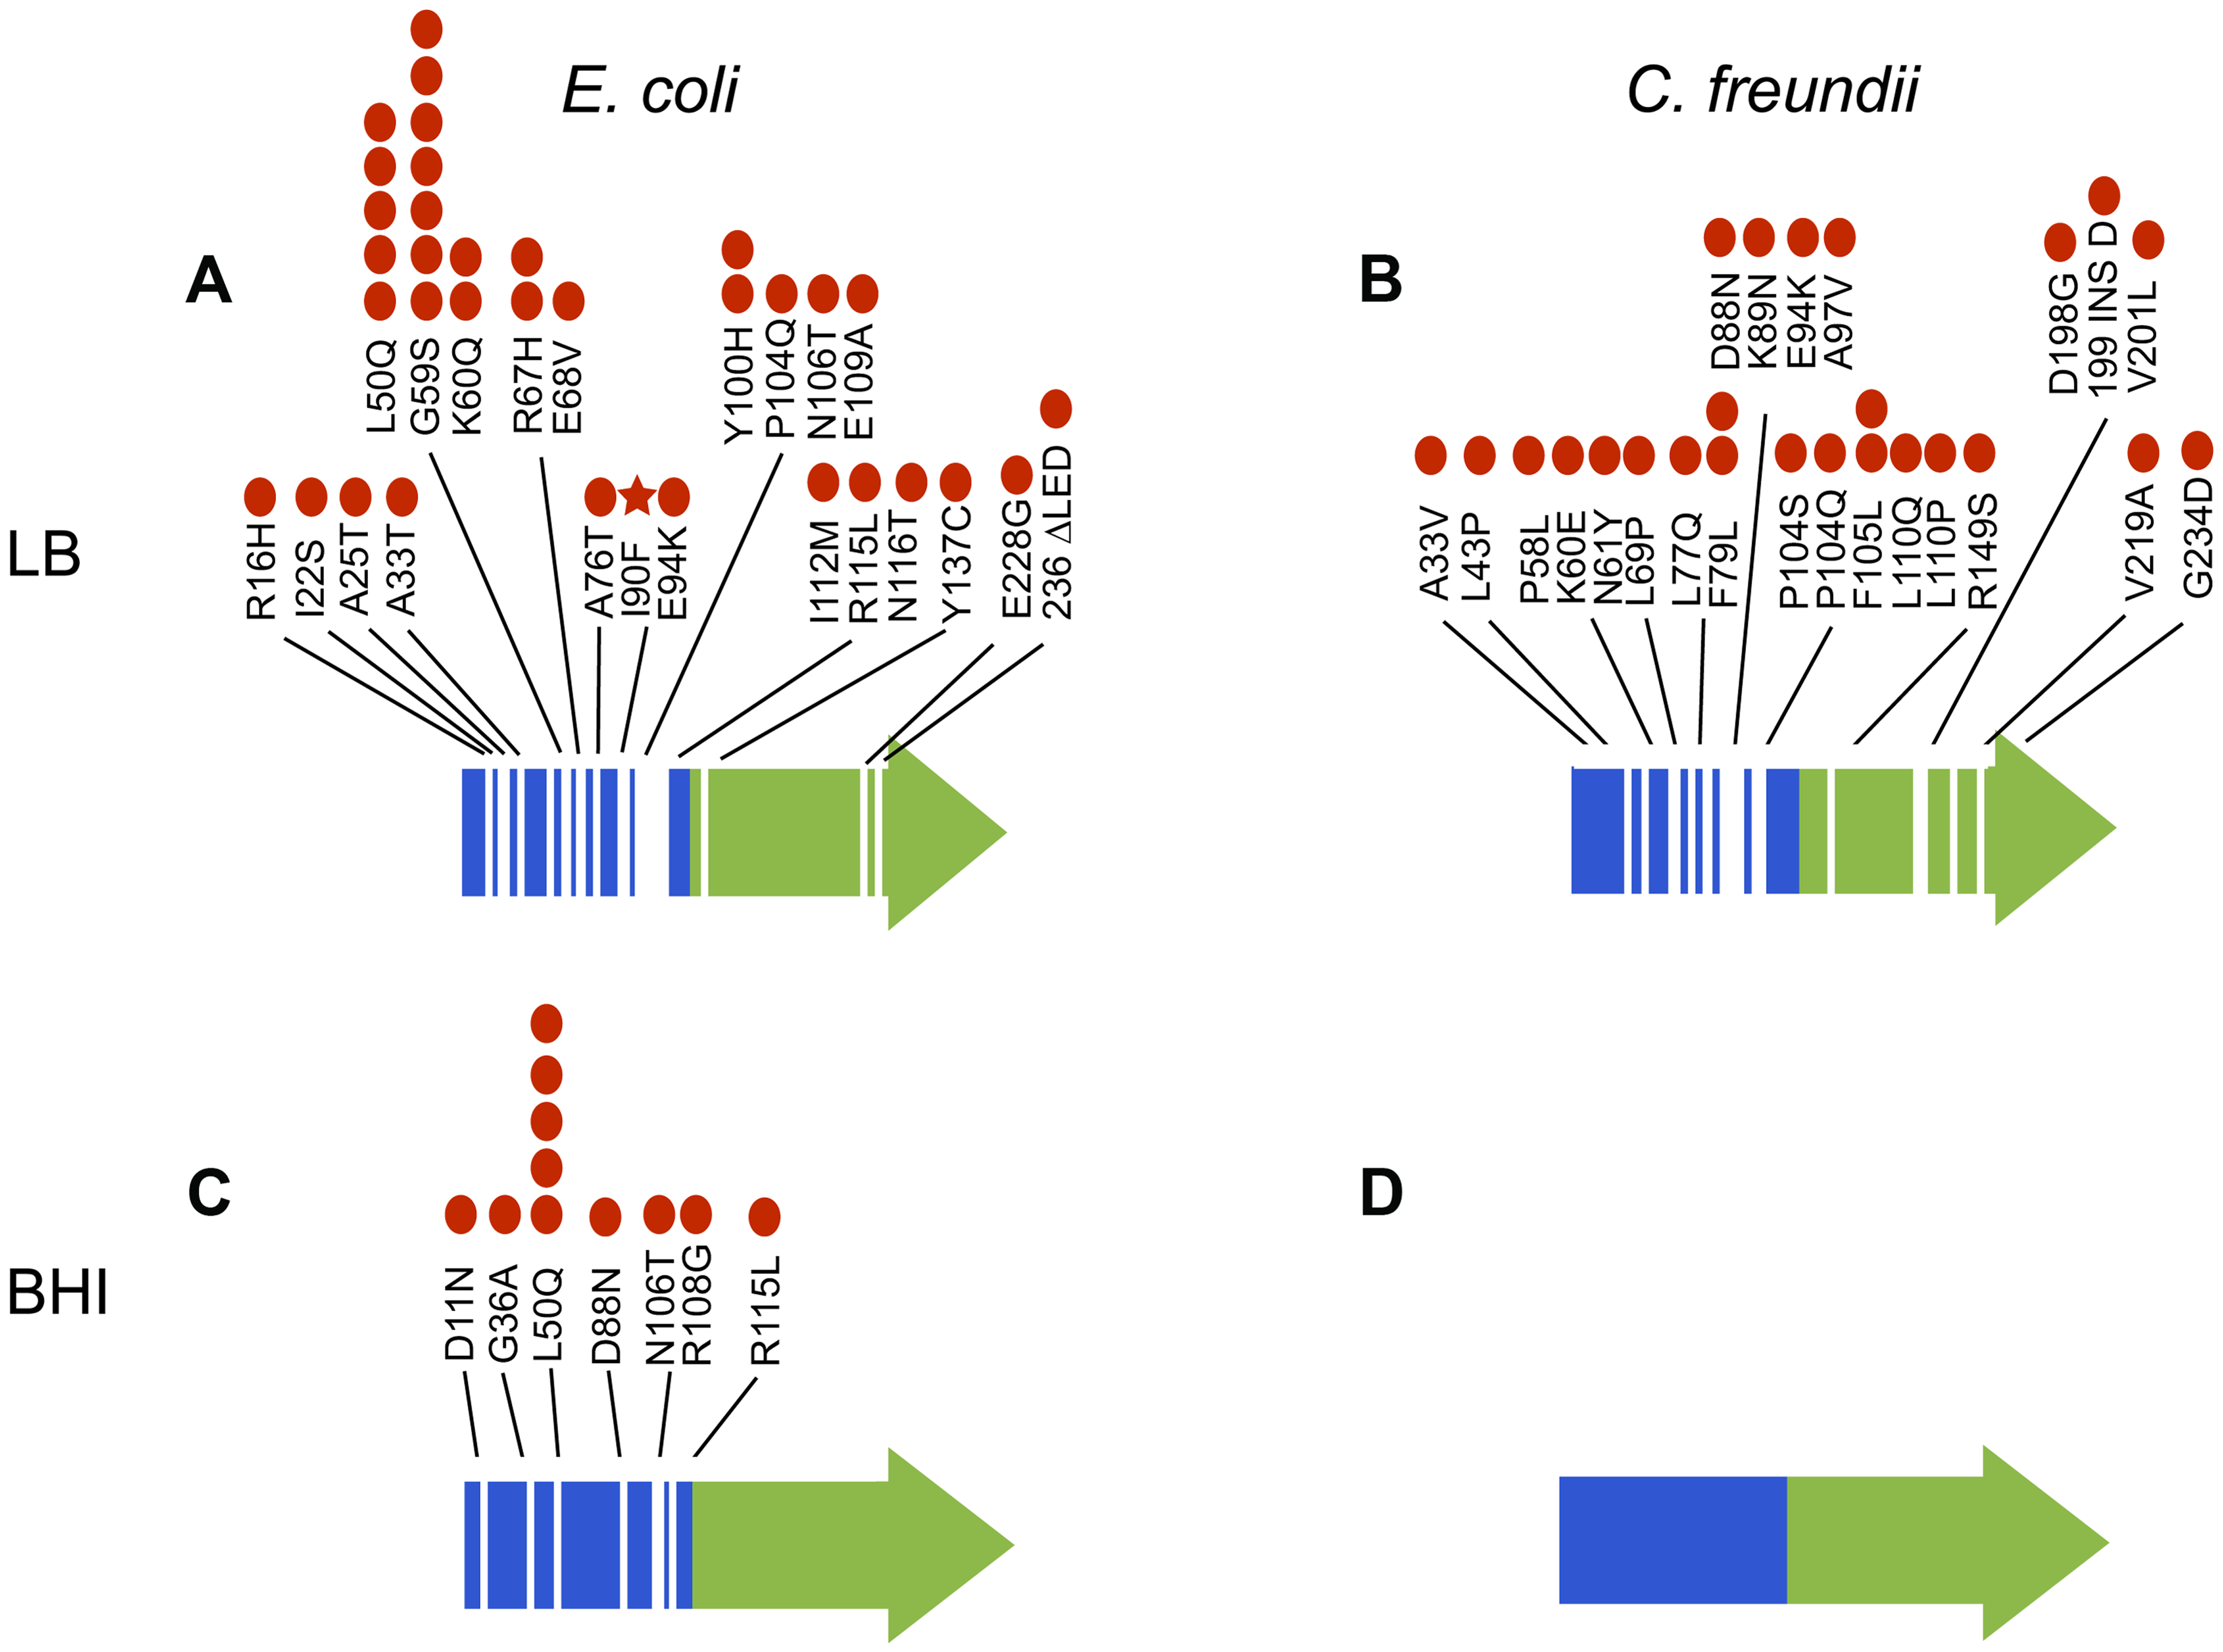 Mutations in <i>arcA</i> evolved repeatedly and with remarkable diversity both within and among populations of <i>E. coli</i> evolved in LB (A) and BHI (C) and <i>C. freundii</i> populations evolved in LB (B) and BHI (D).